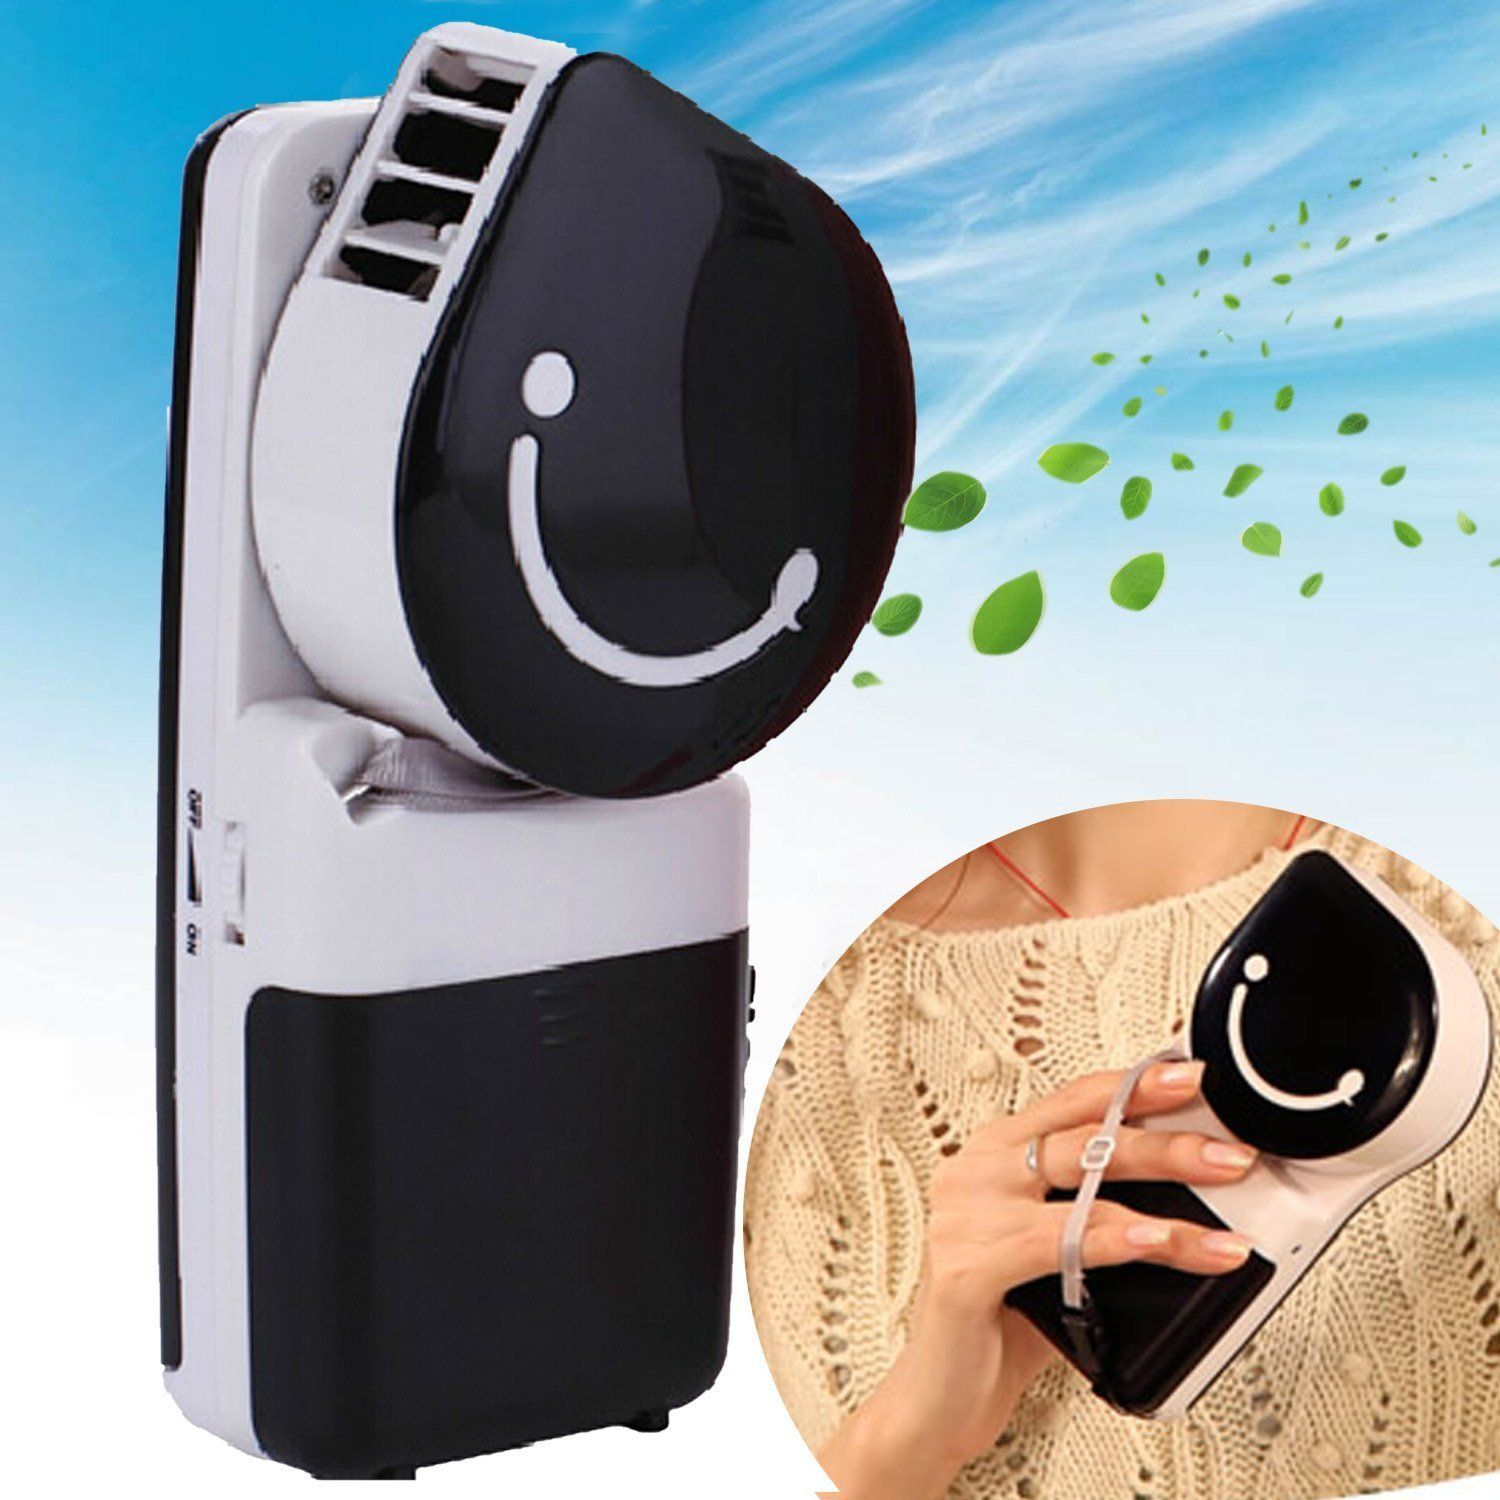 Top Camping Air Conditioner Buyers Guide (With images